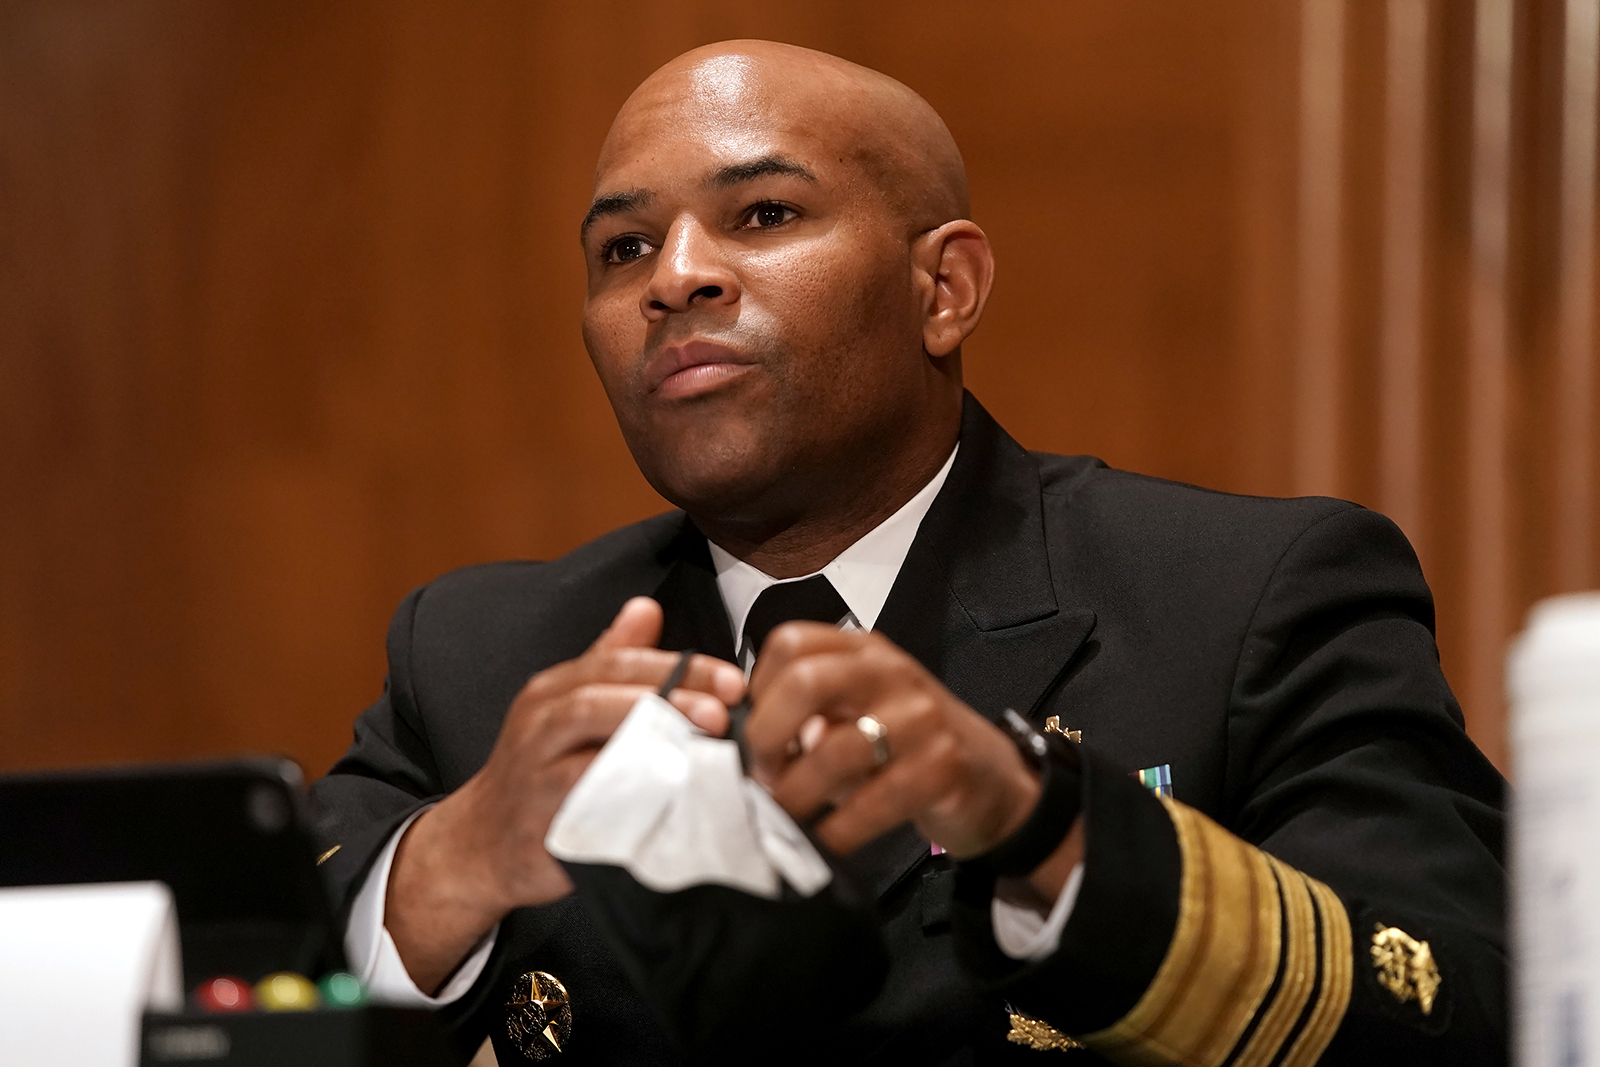 Surgeon General Jerome Adams takes his mask off to give his opening statement during a Senate Health, Education, Labor, and Pensions Committee hearing in Washington DC, on September 9.